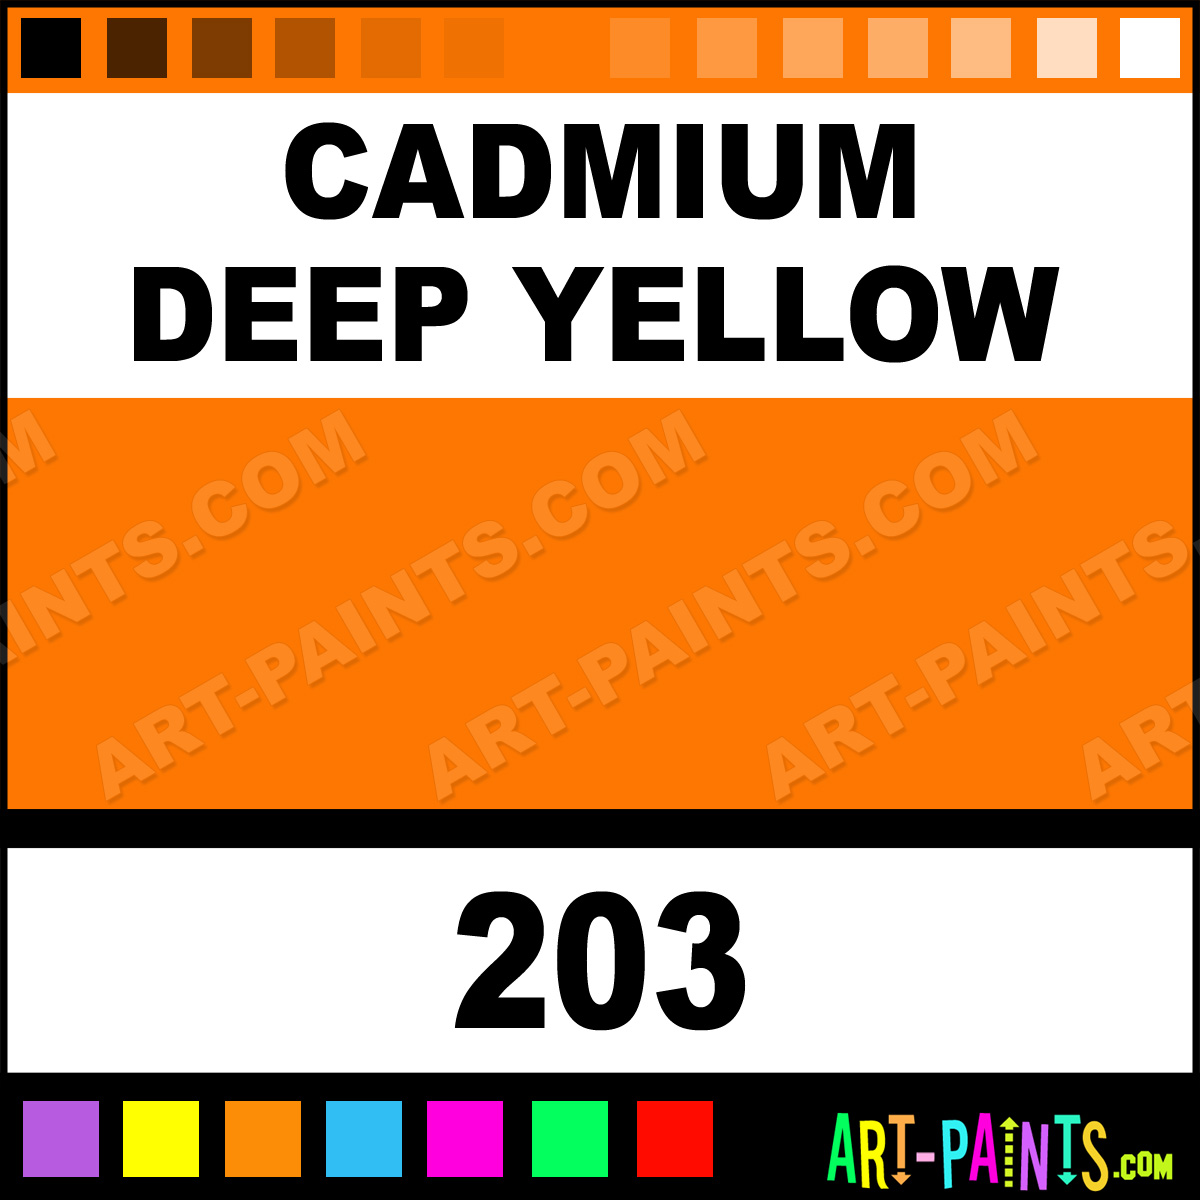 Cadmium Deep Yellow Artist Oil Paints 203 Cadmium Deep